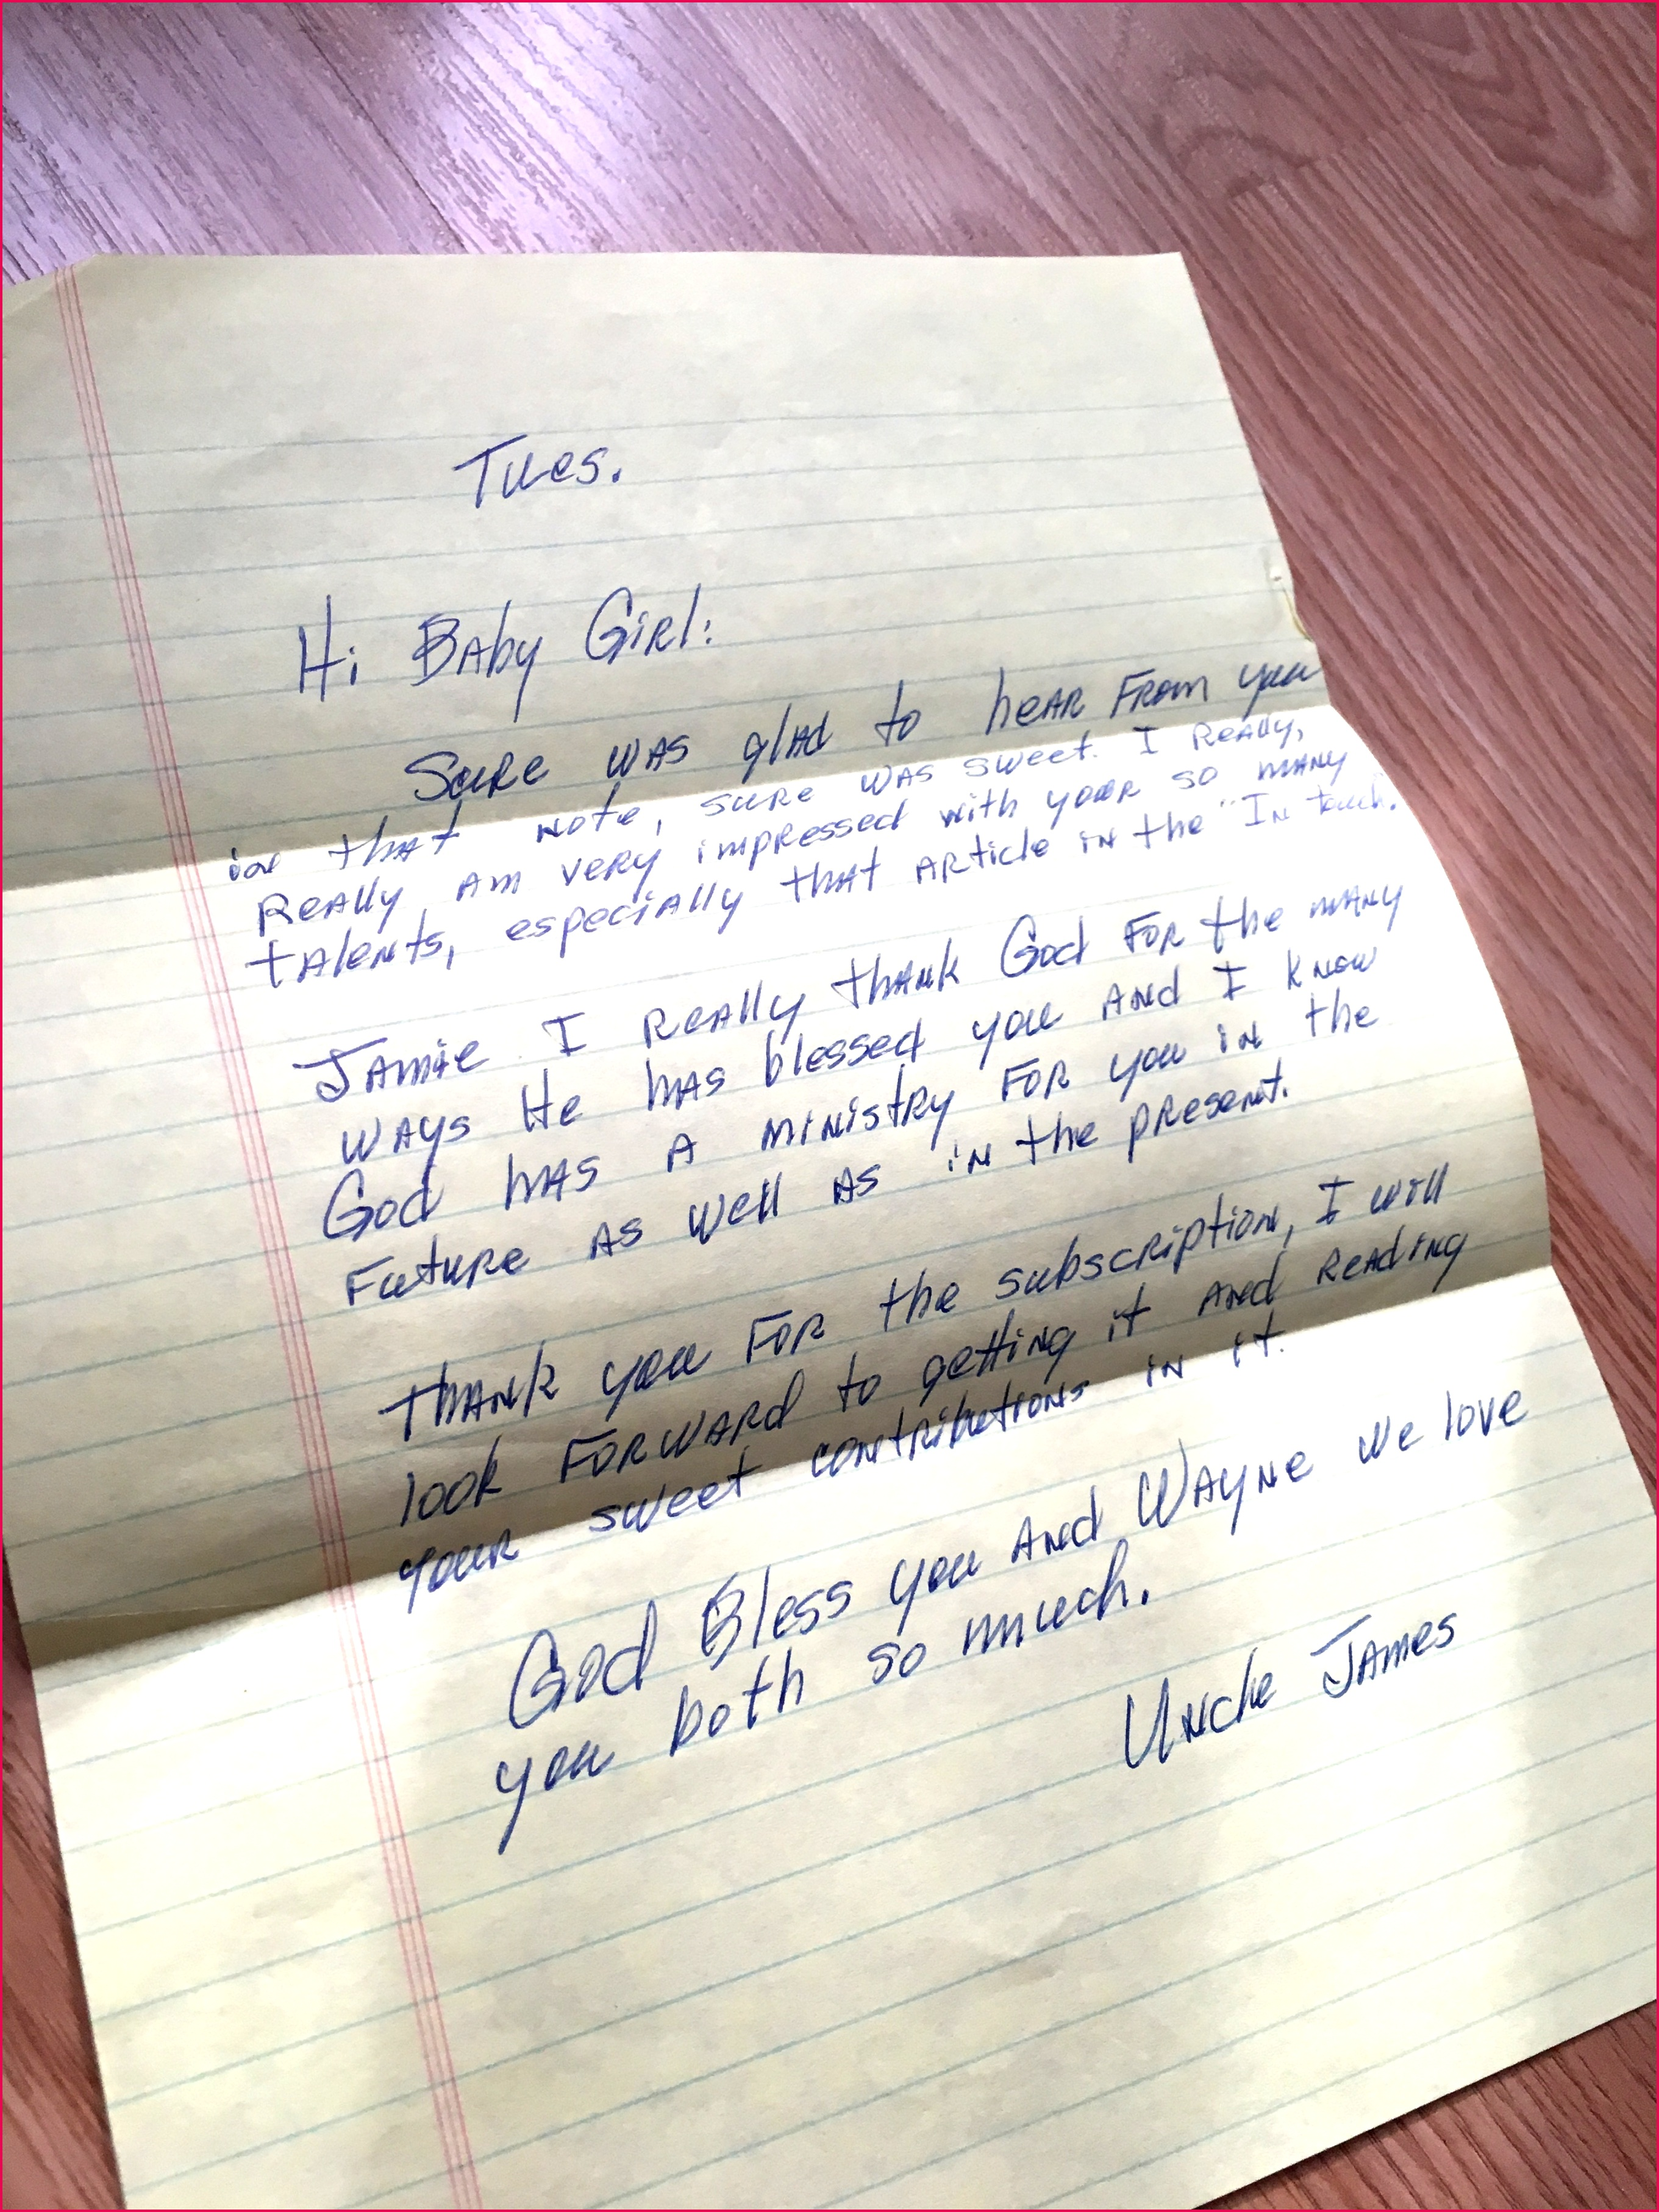 A letter from my paternal grandmother Betty Lou Hill given to me just weeks before she d